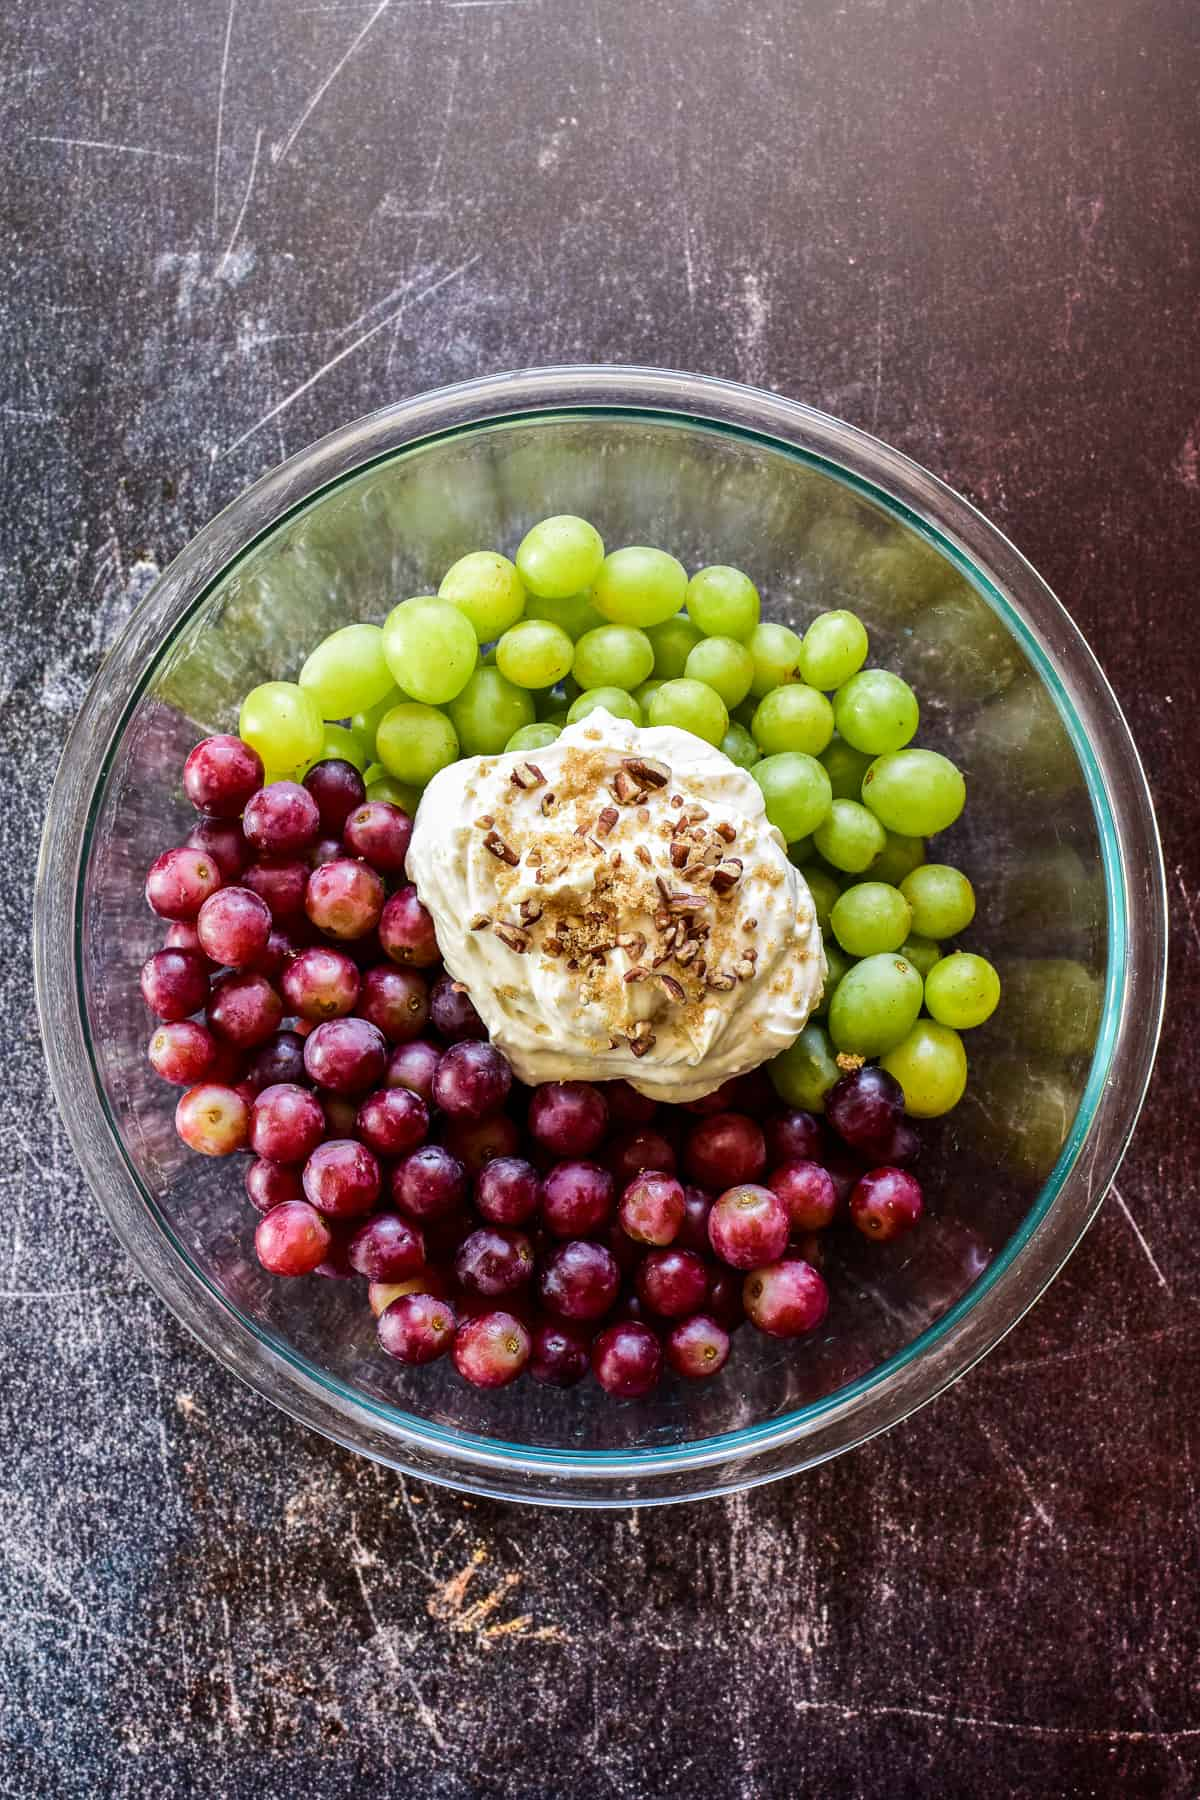 Red & green grapes in mixing bowl with dollop of cream cheese mixture